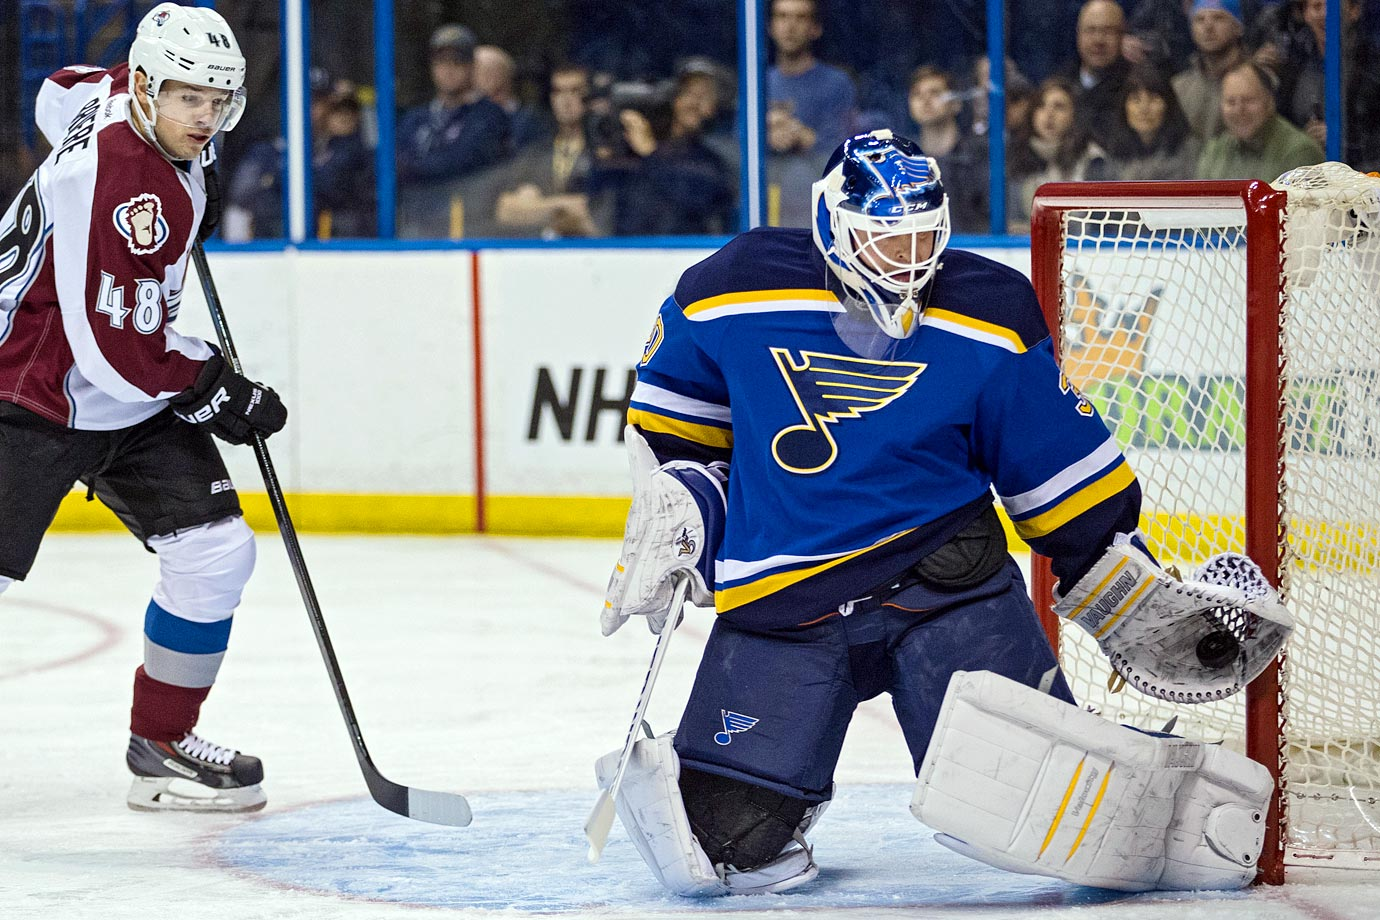 Unsigned as a free agent, Brodeur inked a one-year, $700,000 deal with the injury-plagued St. Louis Blues on Dec. 2, 2014. He concluded his legendary career with seven appearances, a 3-3-0 record, .899 save percentage and 2.87 GAA. On Jan. 29, 2015, he announced his retirement as the NHL's all-time leader in games played by a goalie (1,266), saves (28,928), wins (691), shutouts (125), and playoff shutouts (24).